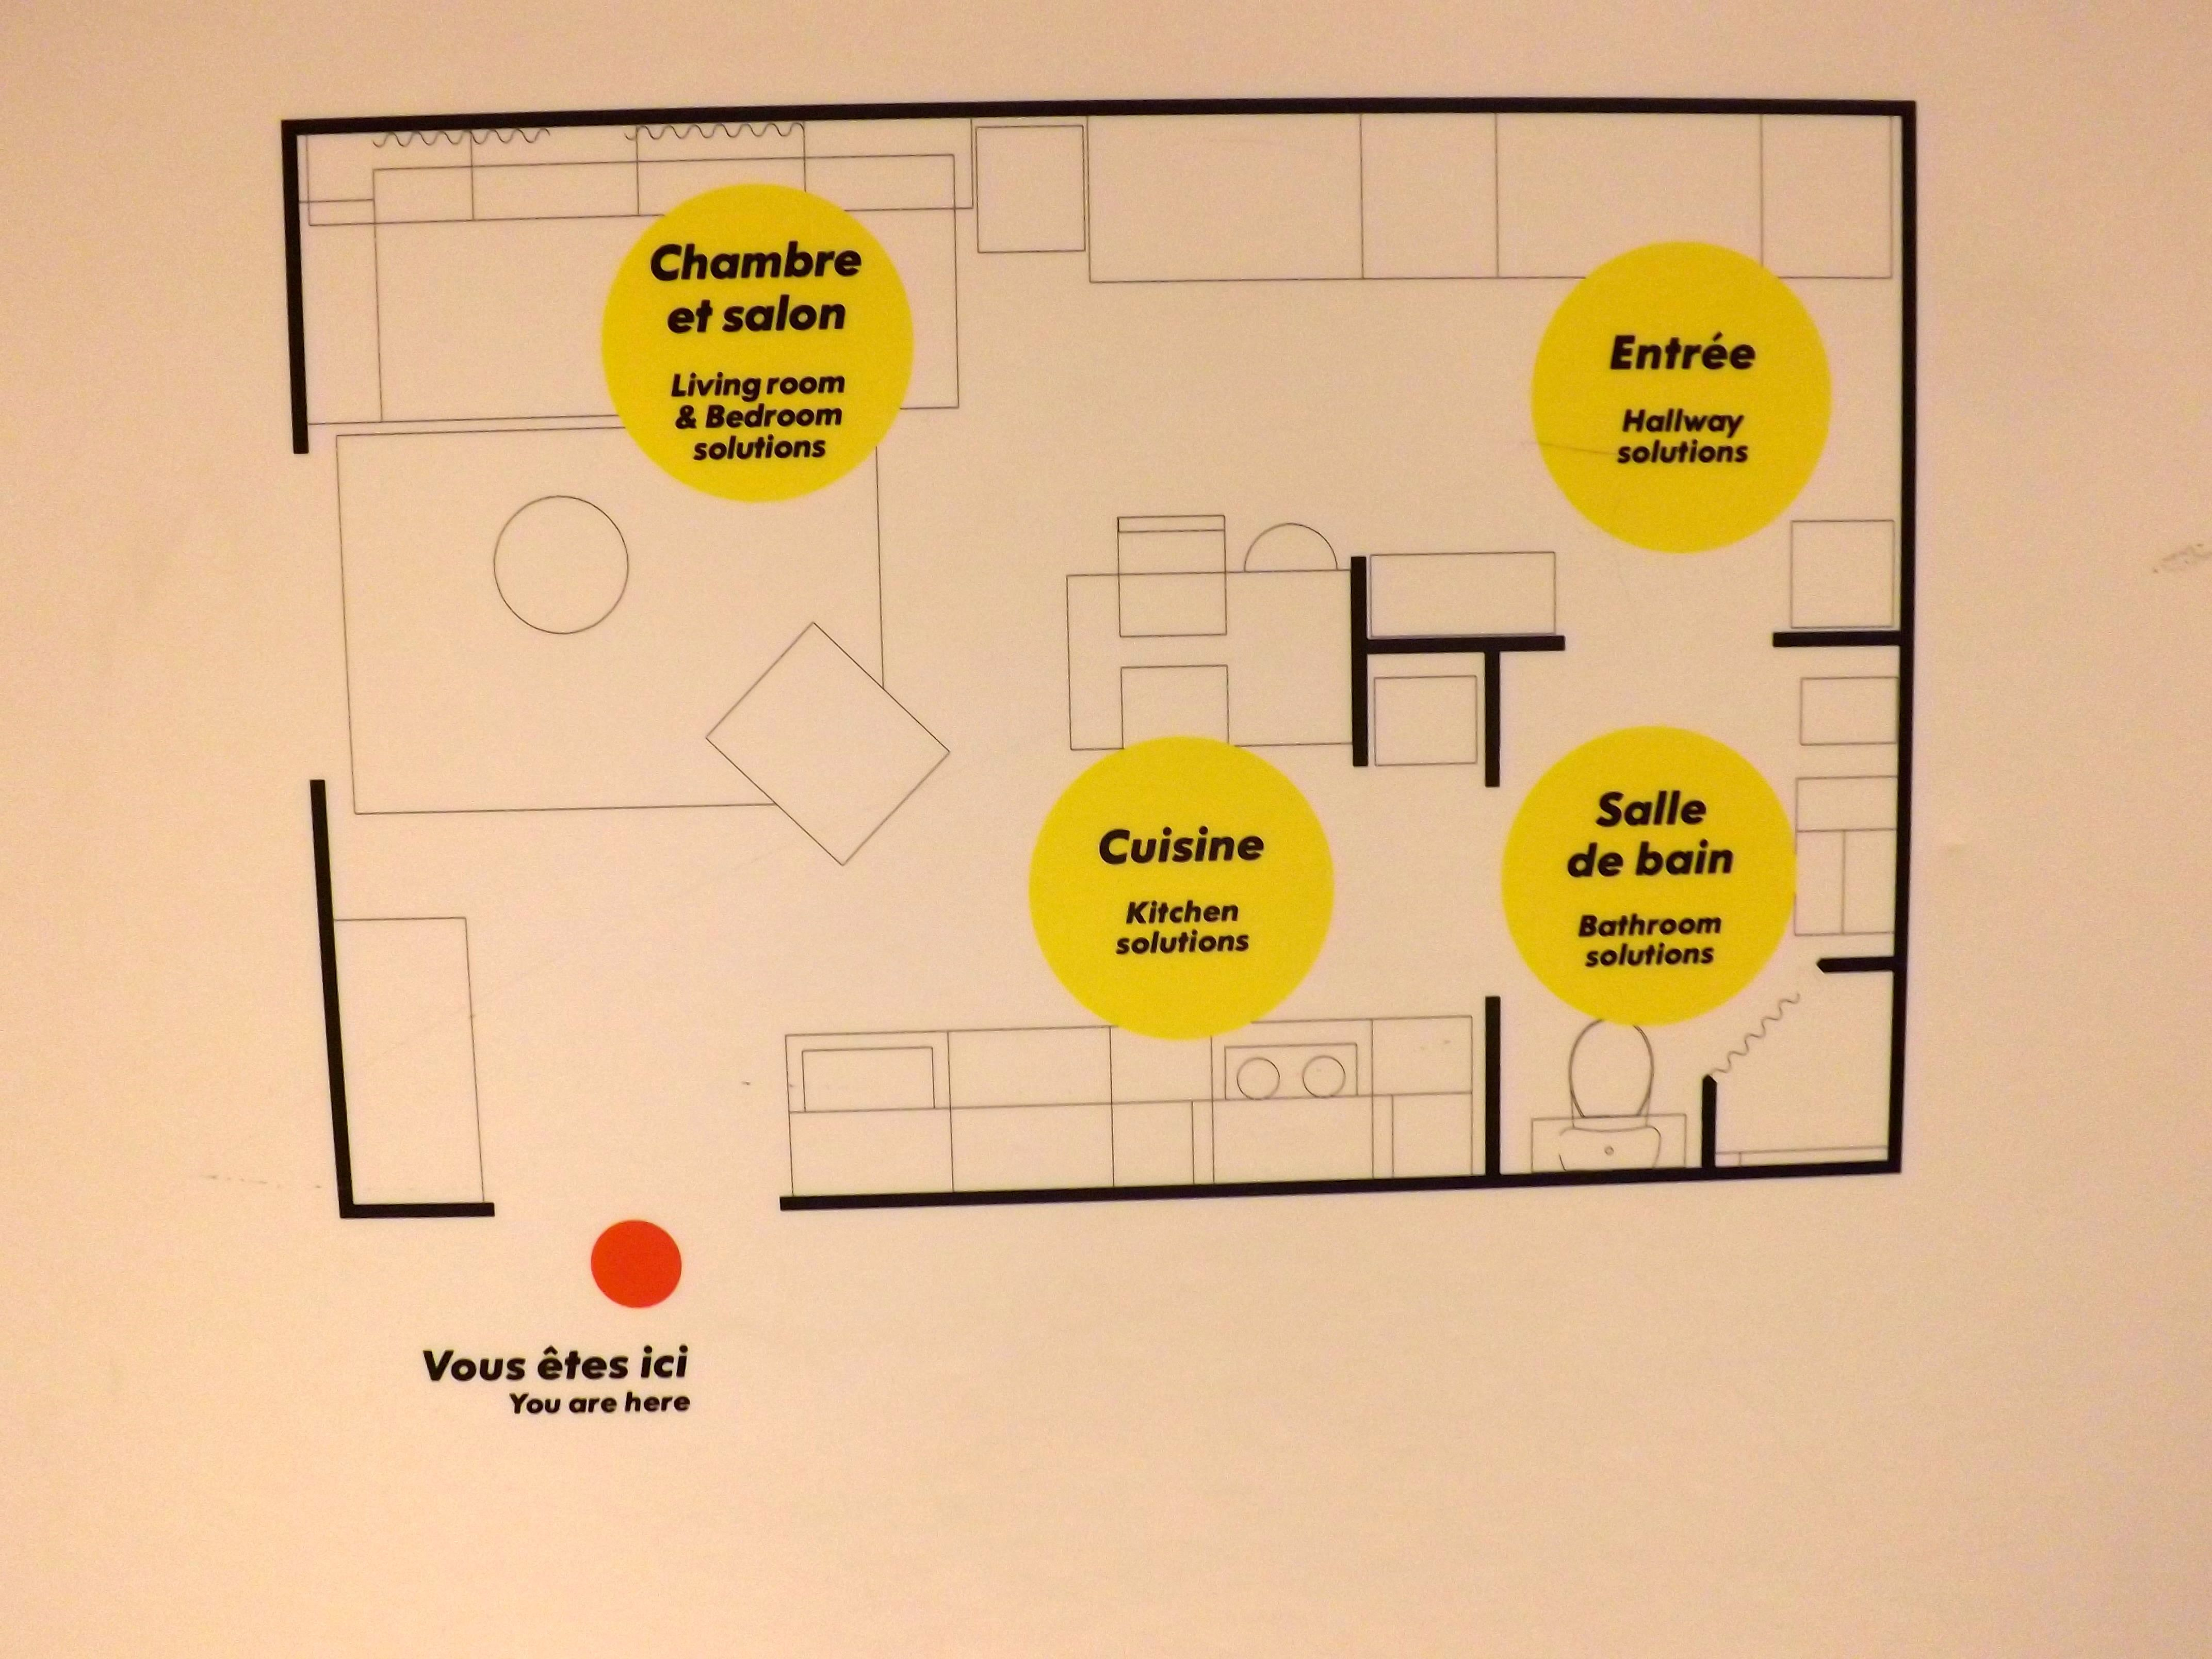 270 sq ft floor plan by IKEA | Dream home | Pinterest | Tiny houses ...